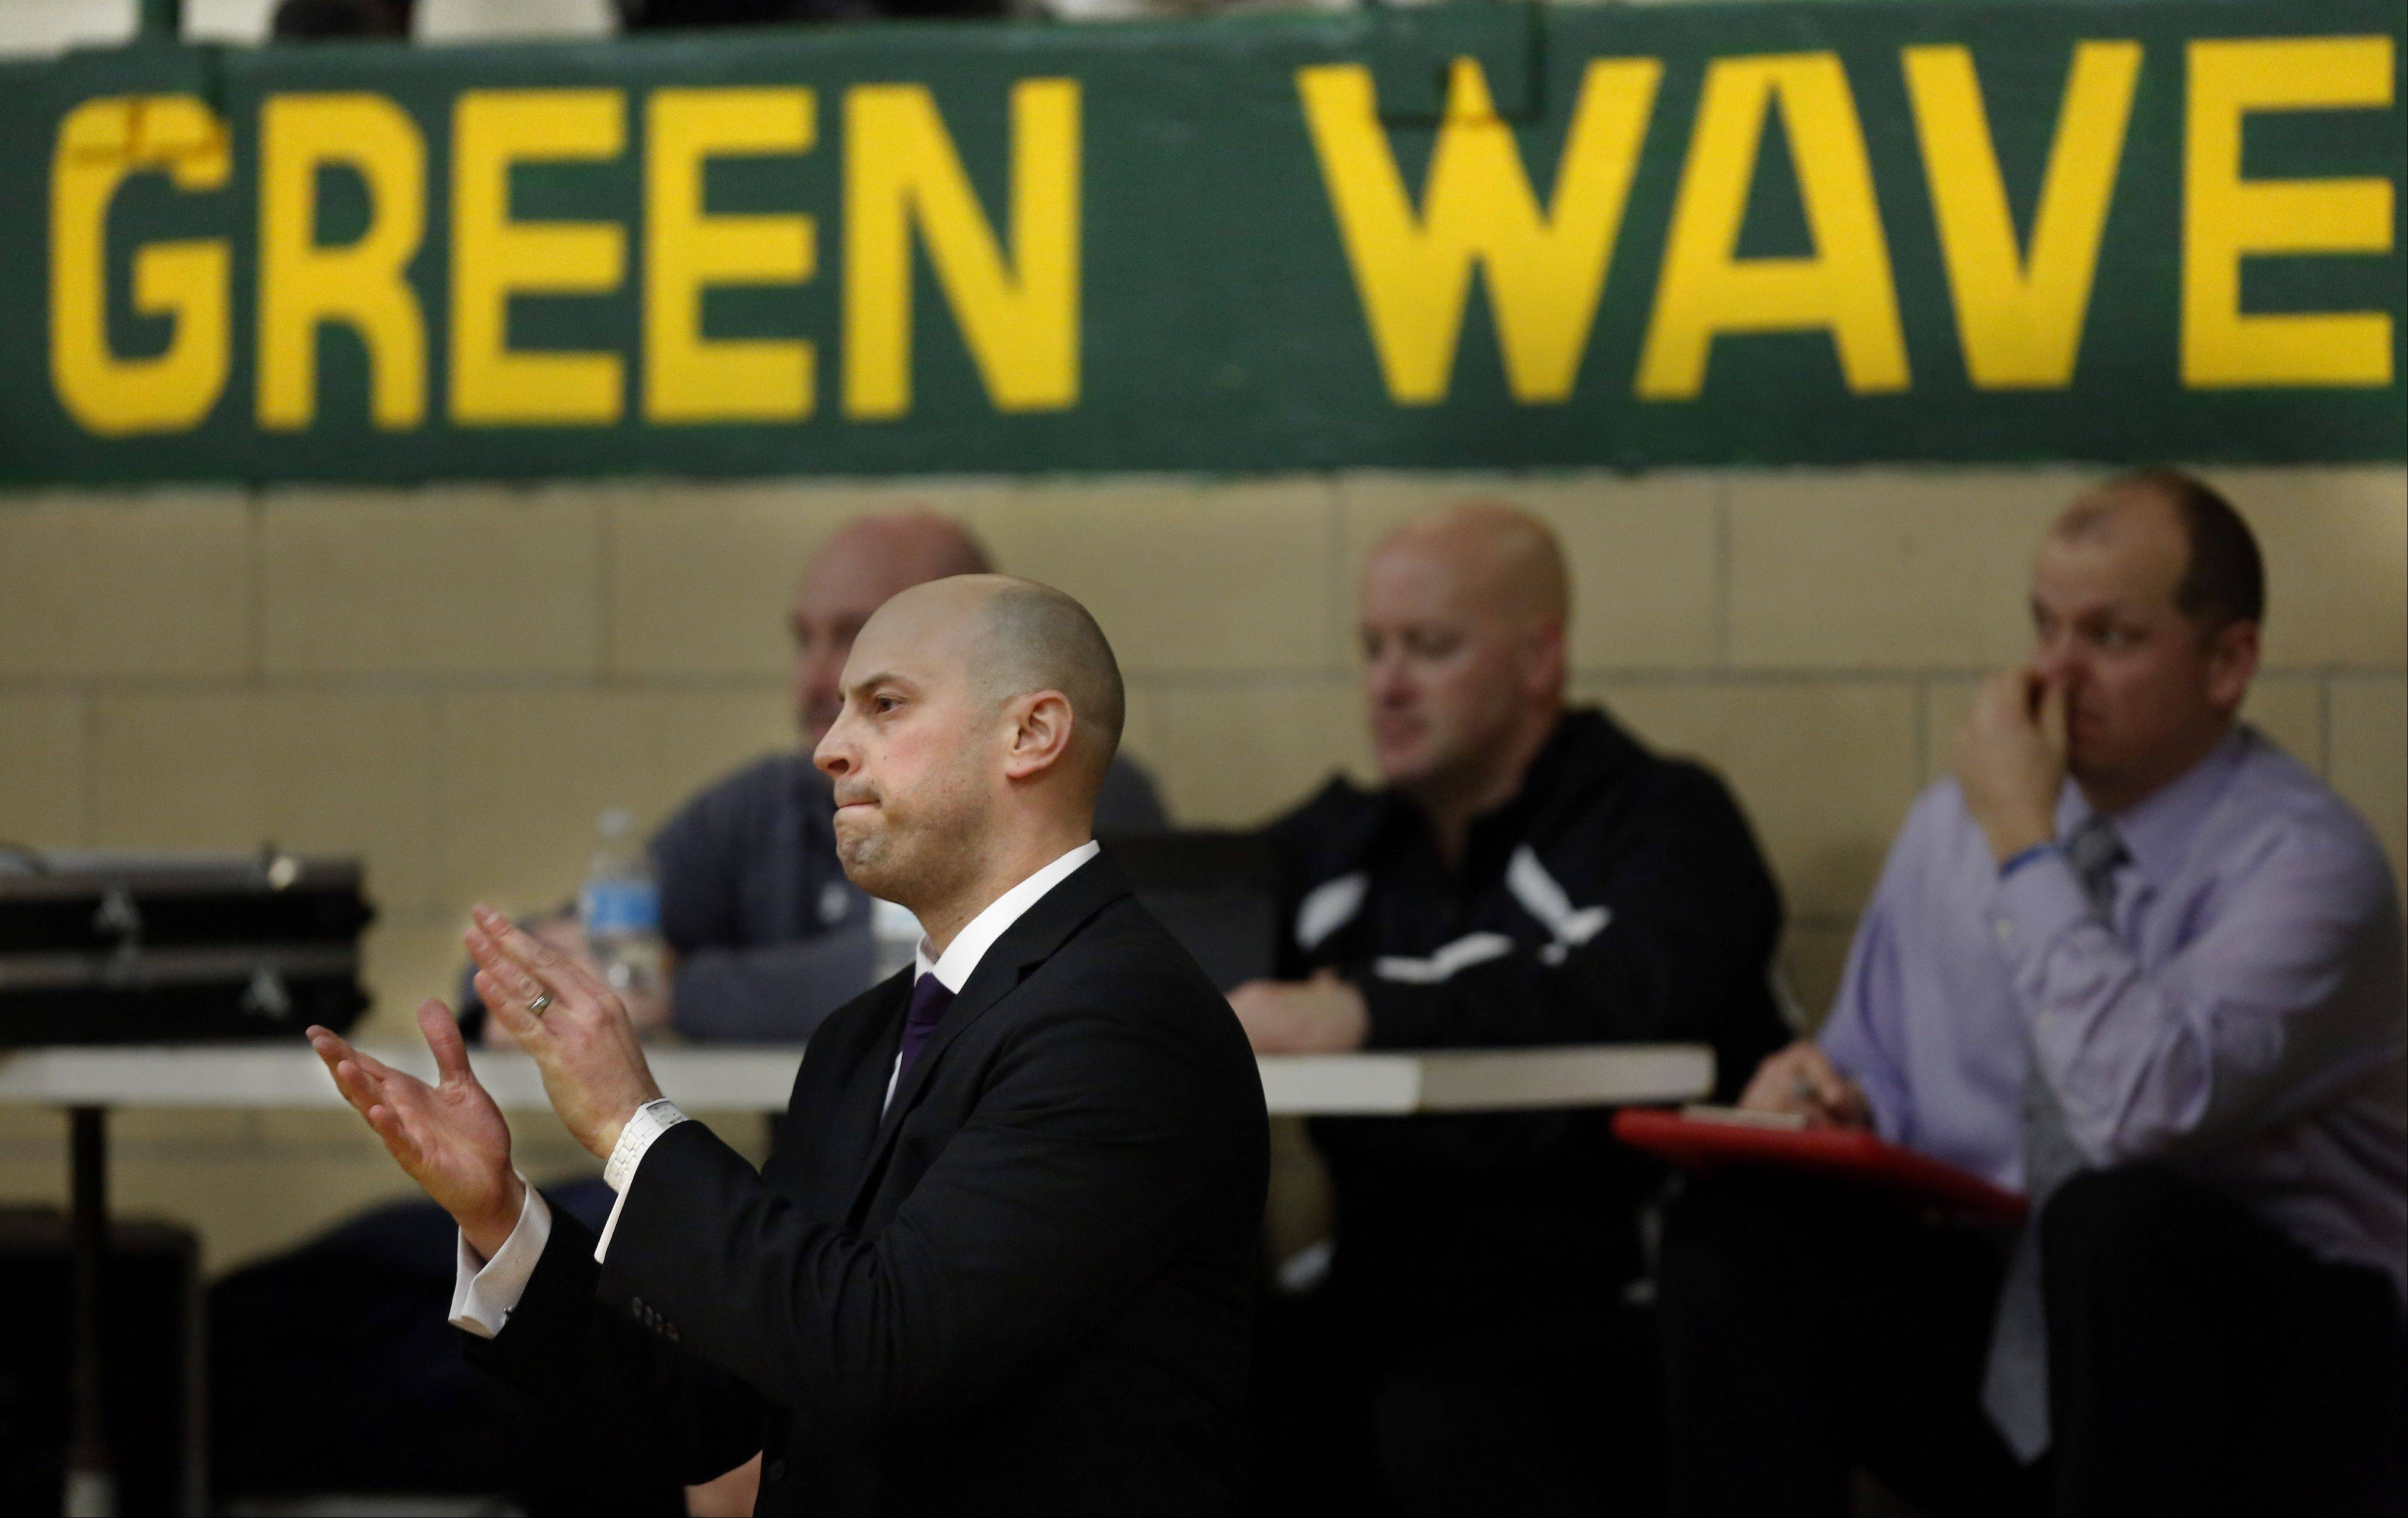 Former St. Edward player and current Kaneland coach Brian Johnson during the Kaneland at St. Edward boys basketball game Friday in Elgin.